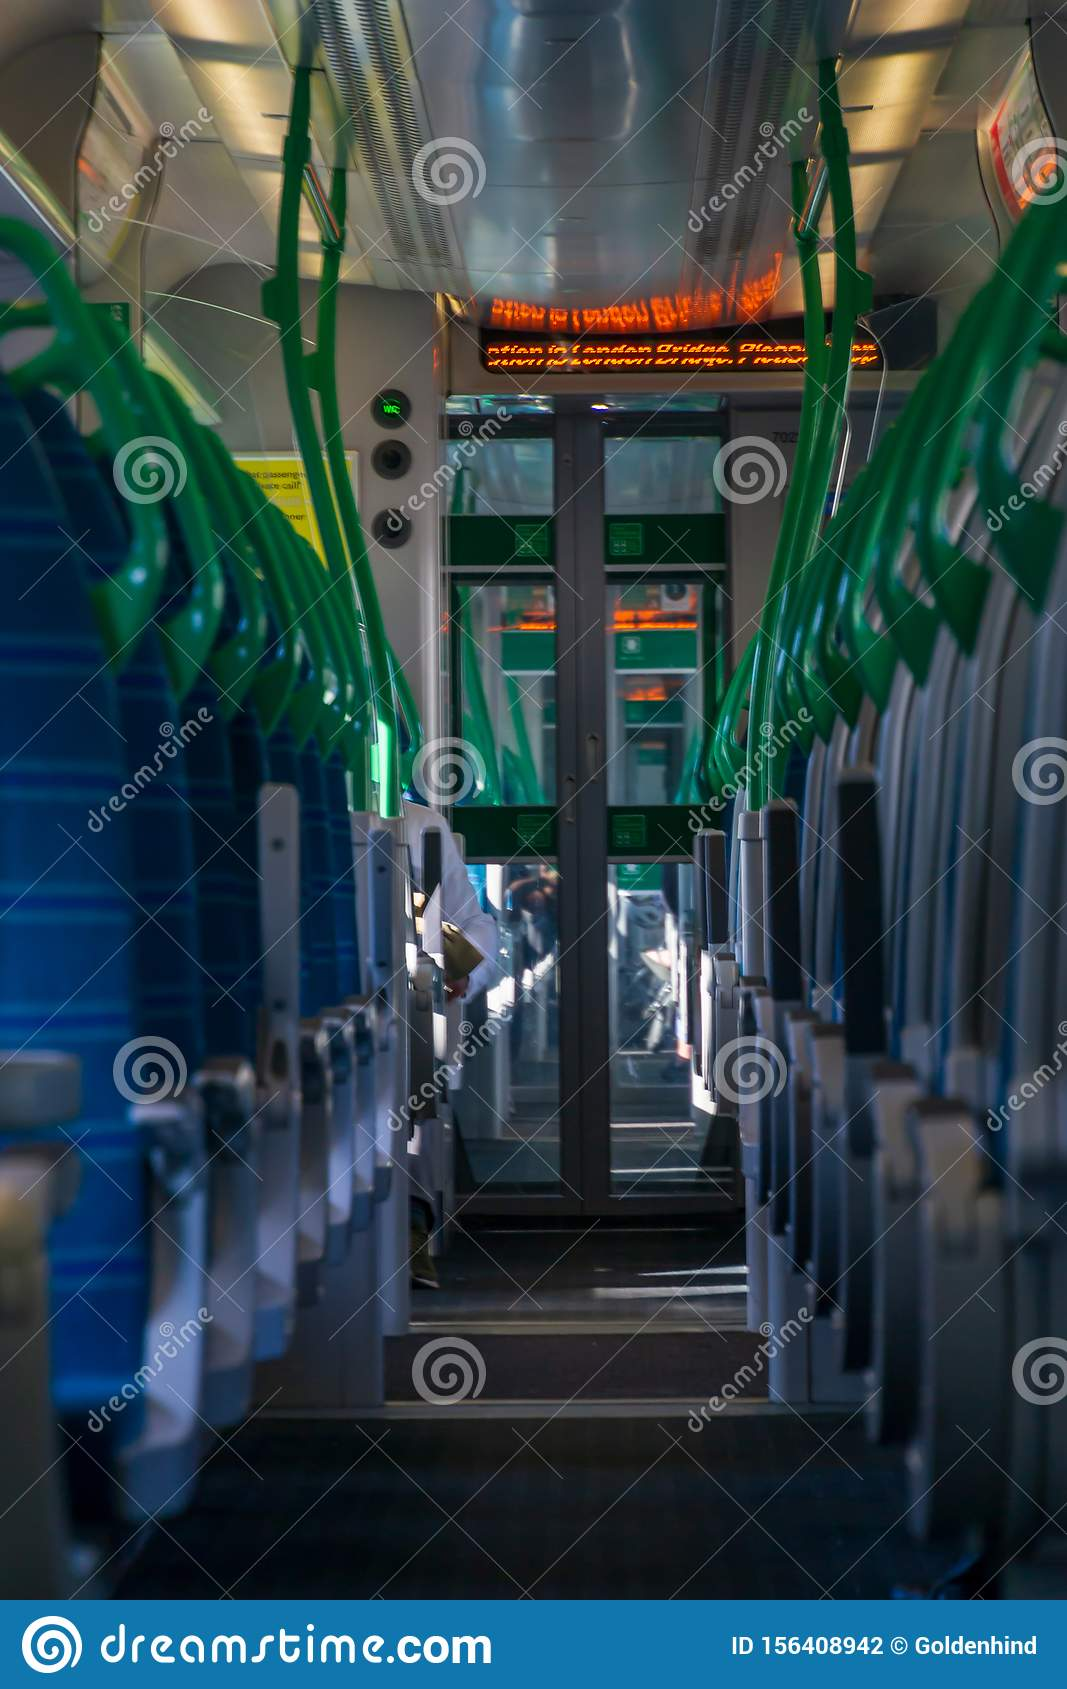 White light panoramic view interior of a high speed electric modern train with blue seats